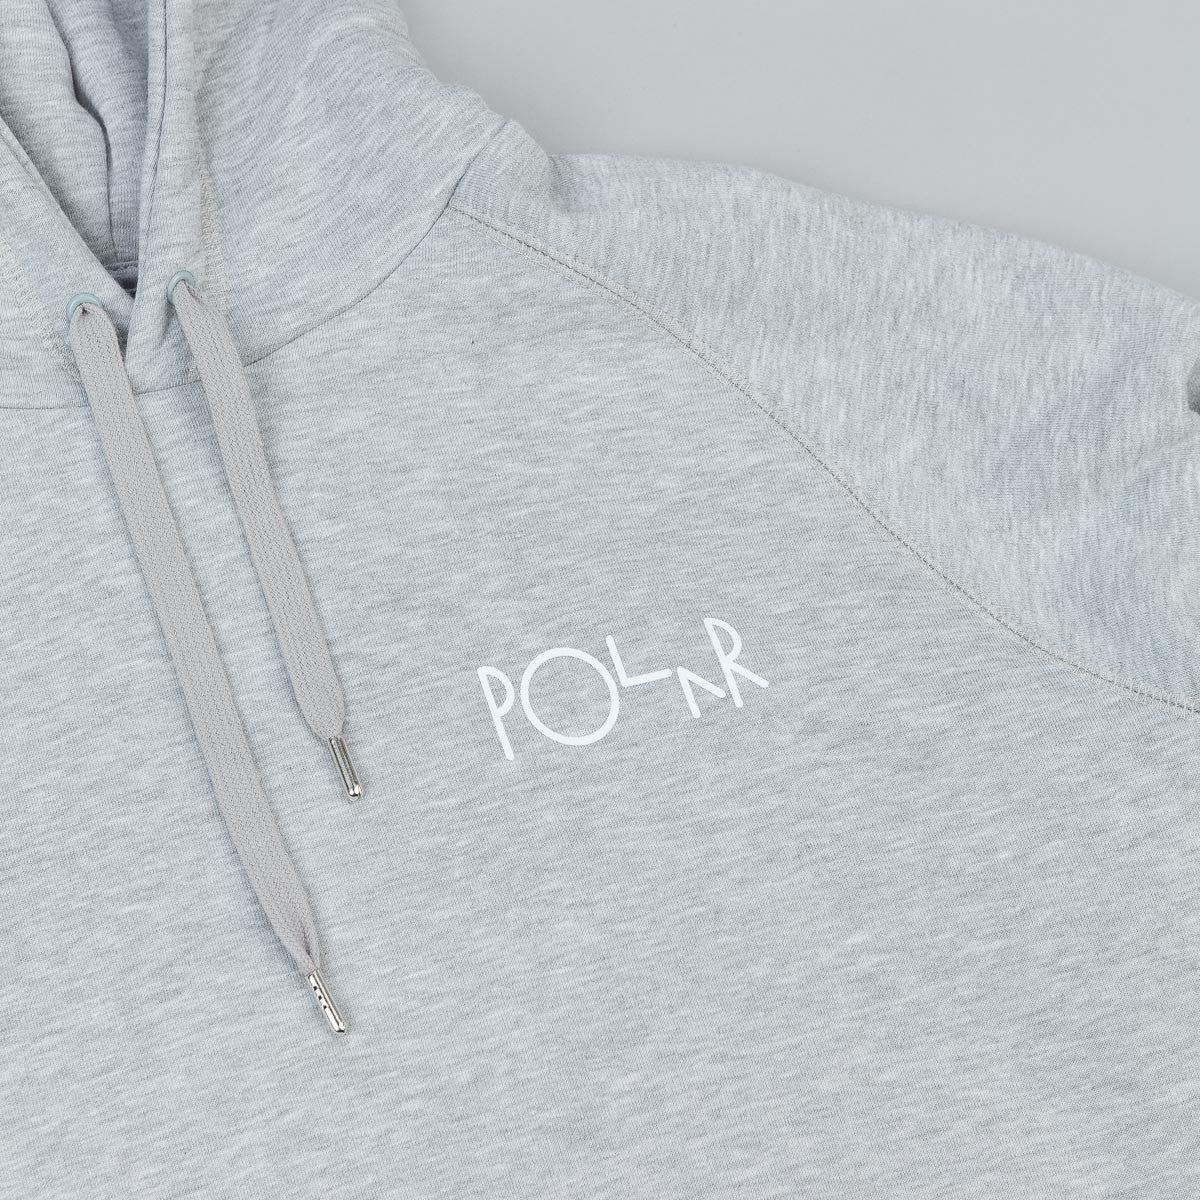 Polar Stroke Logo Hooded Sweatshirt - Grey Heather / Black